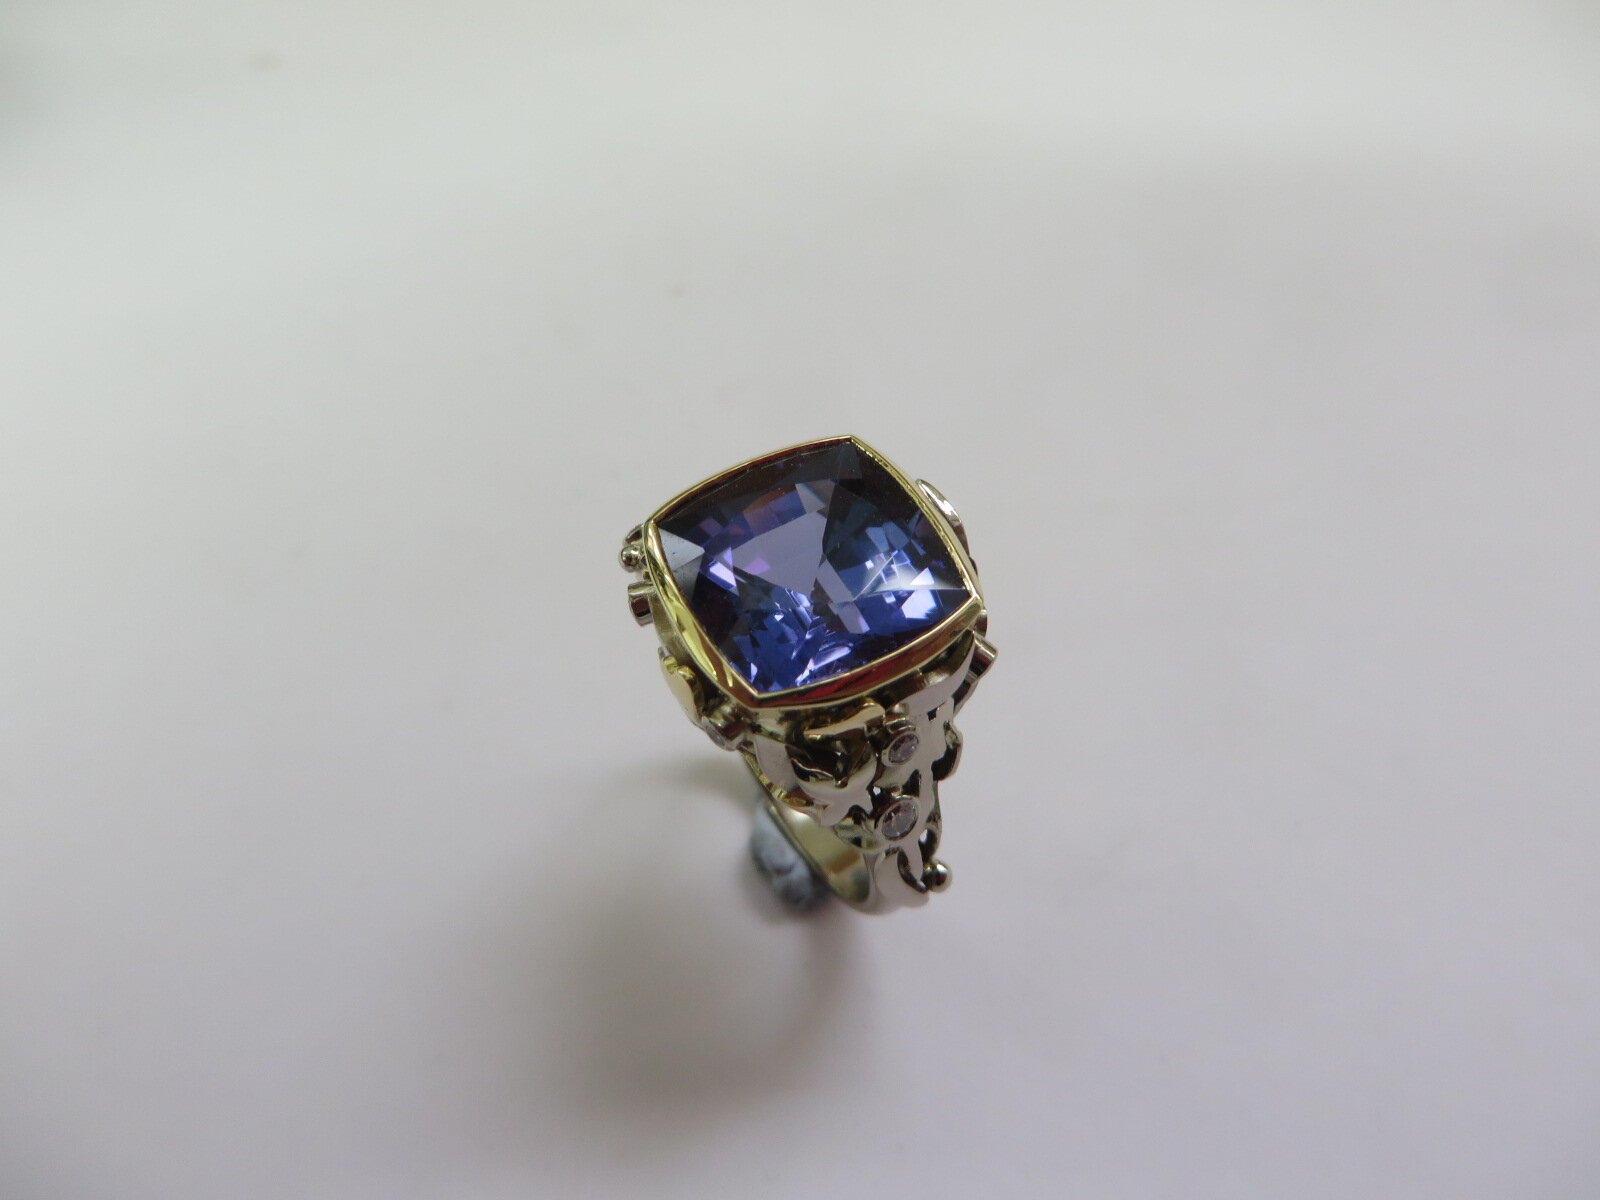 Tanzanite and Diamond dress ring Commission Designed and hand made in 18ct Gold by QV Jewellery.